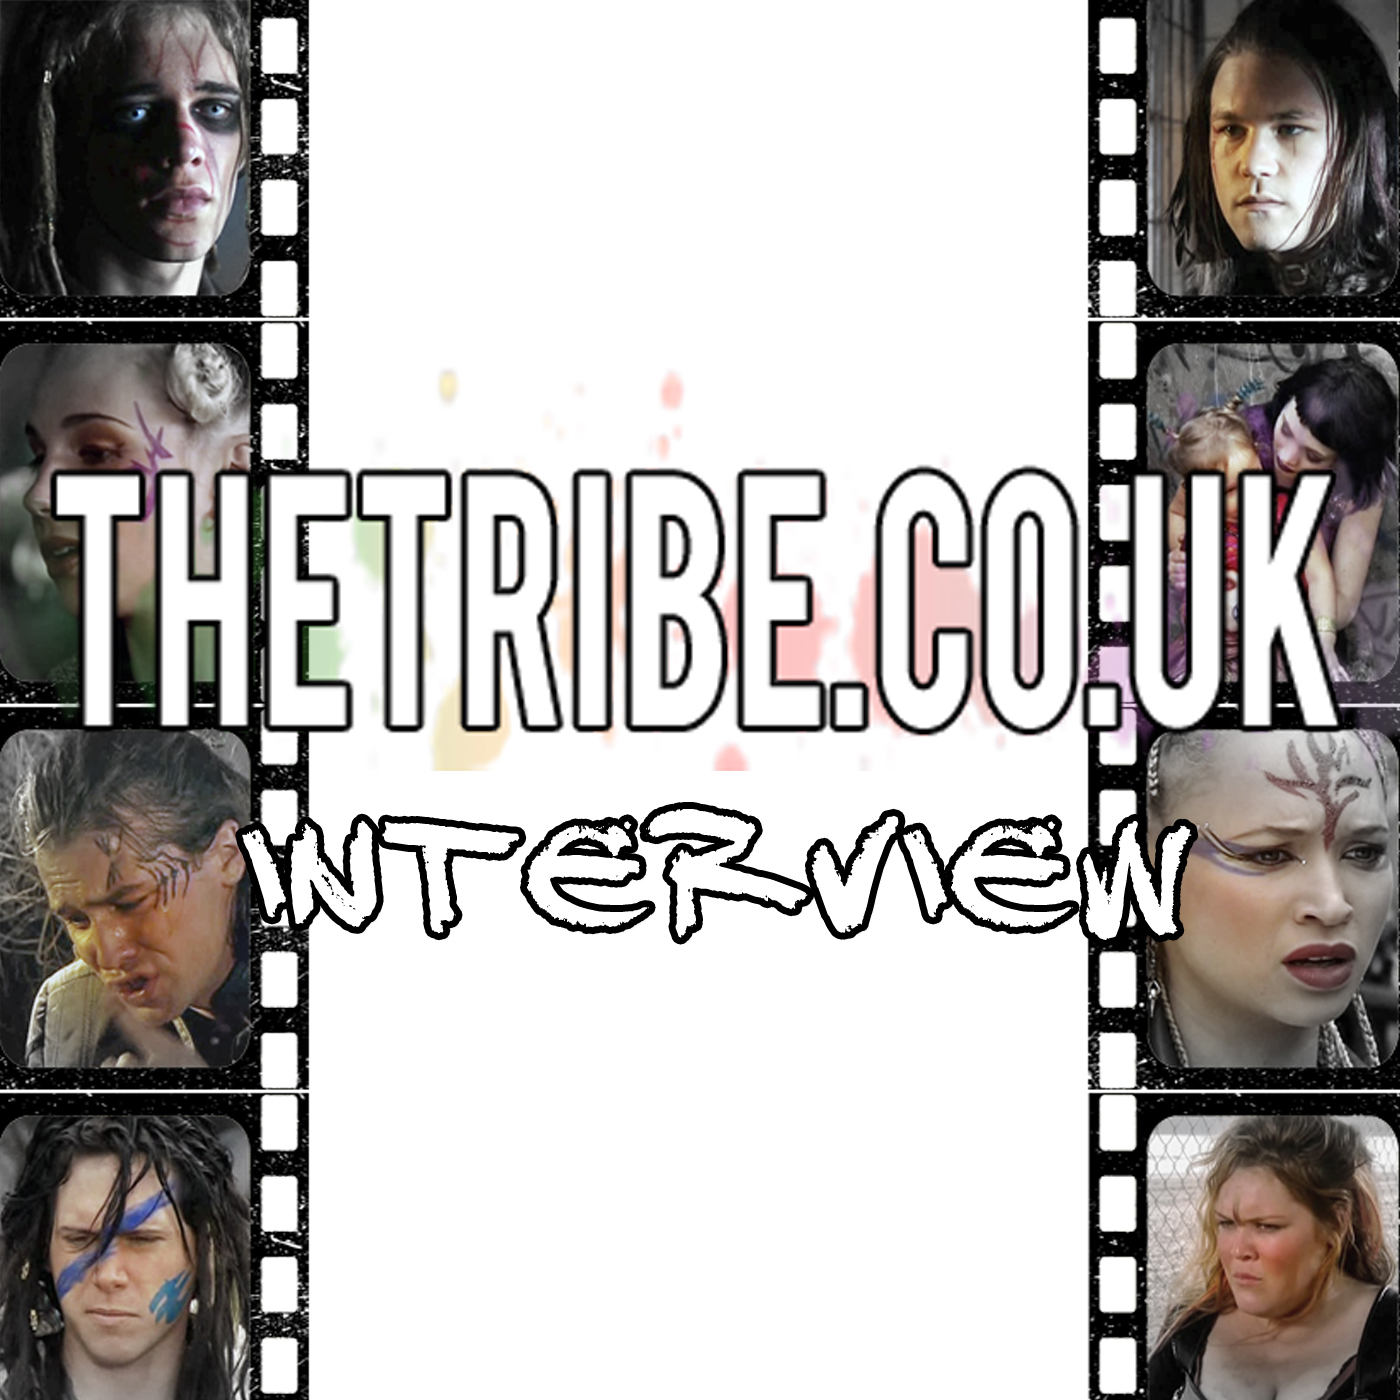 Interviews with The Tribe cast